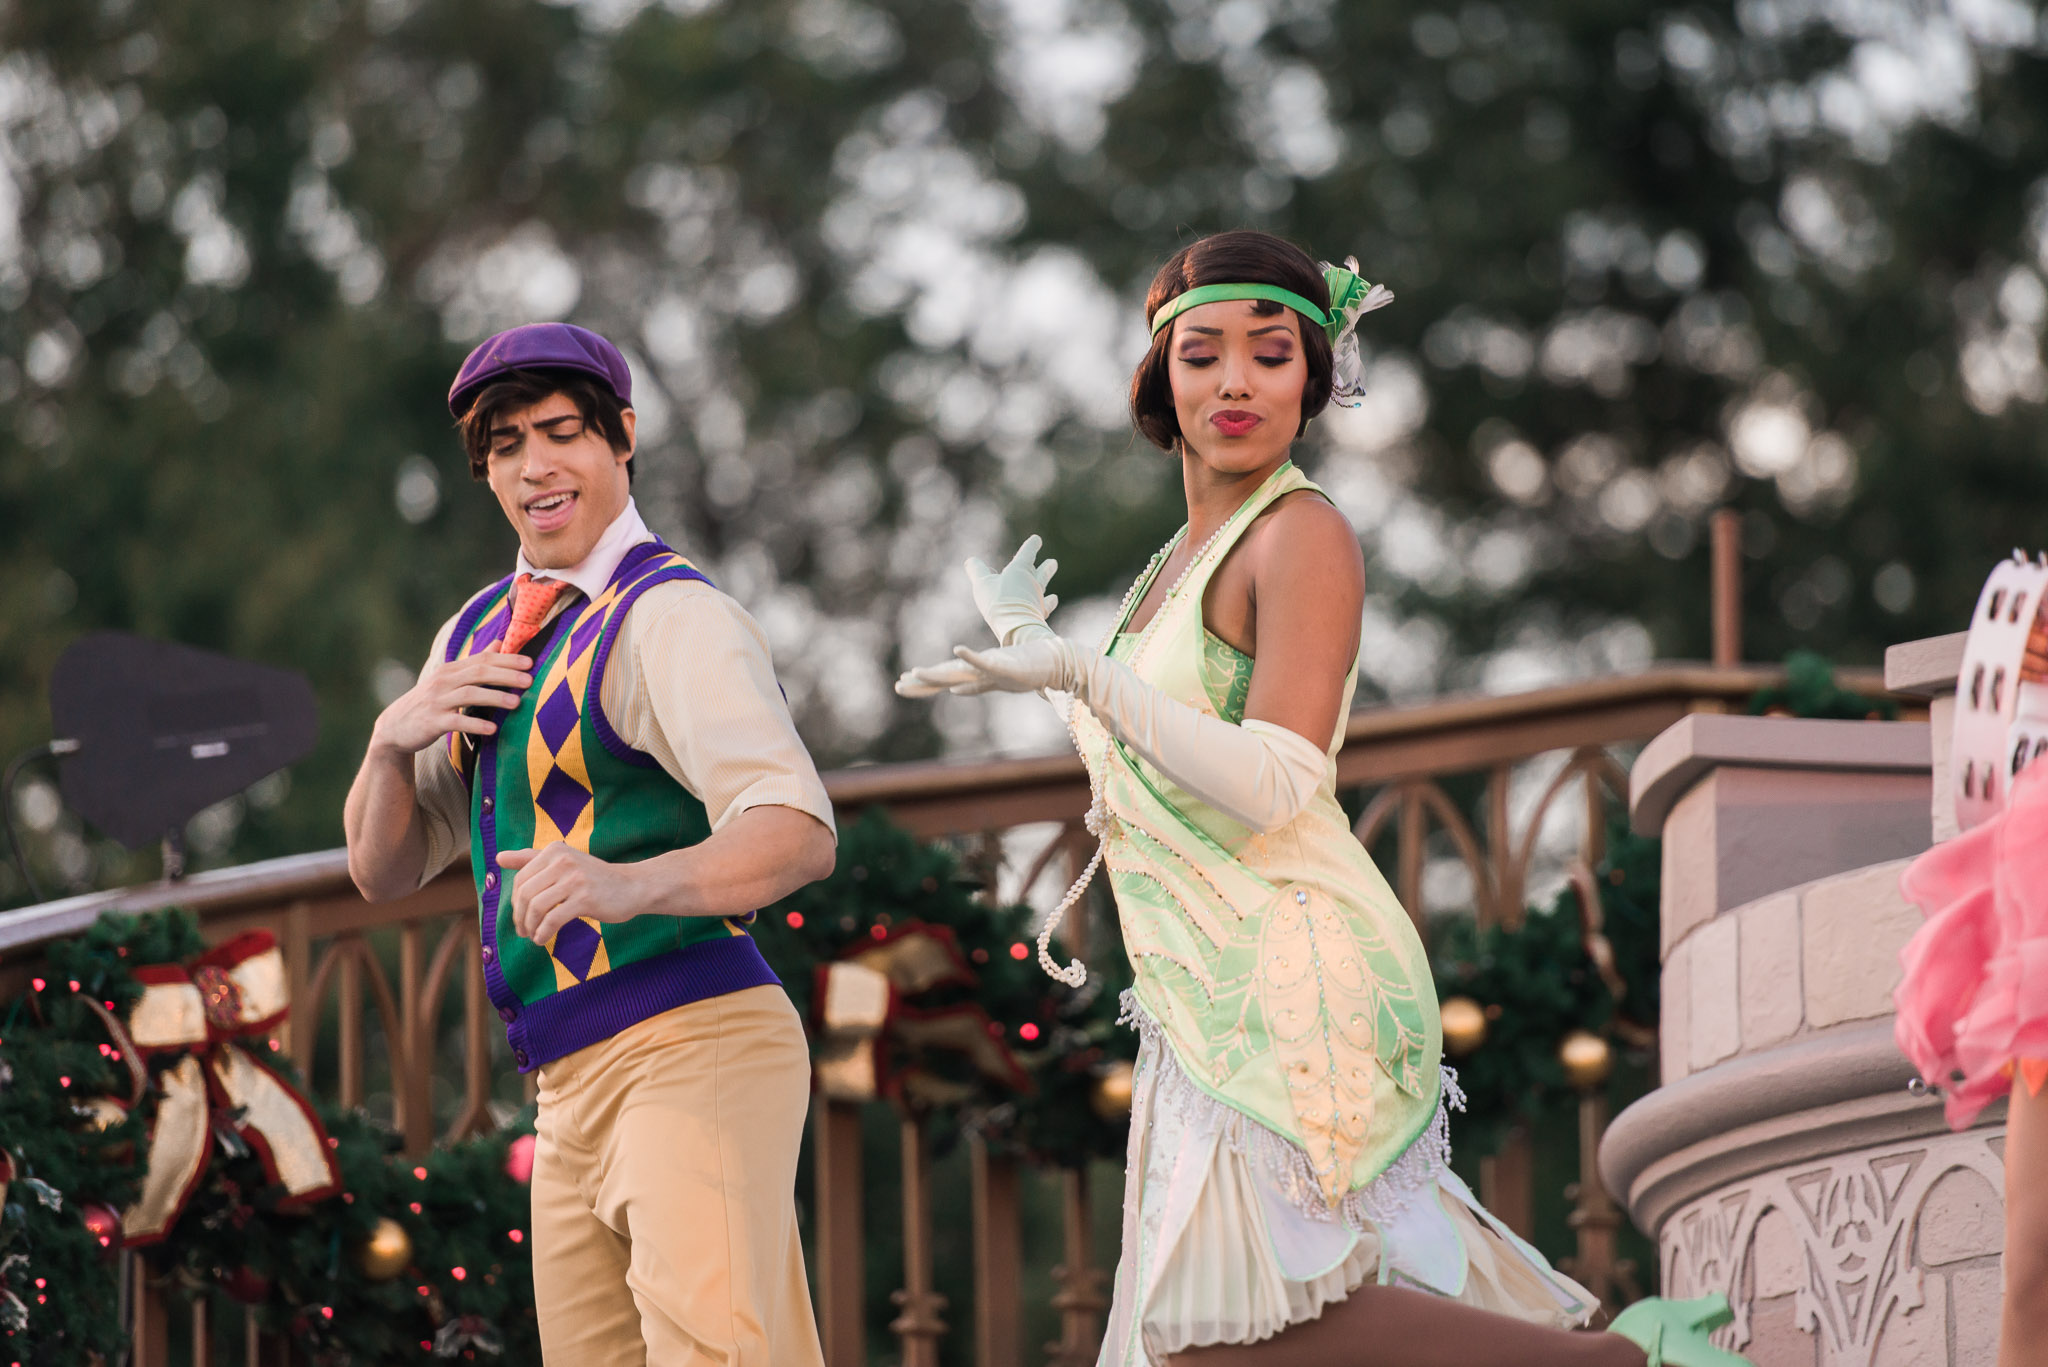 KateTaramykinStudios-Disney-World-Photographer-Dec-2016-3.jpg